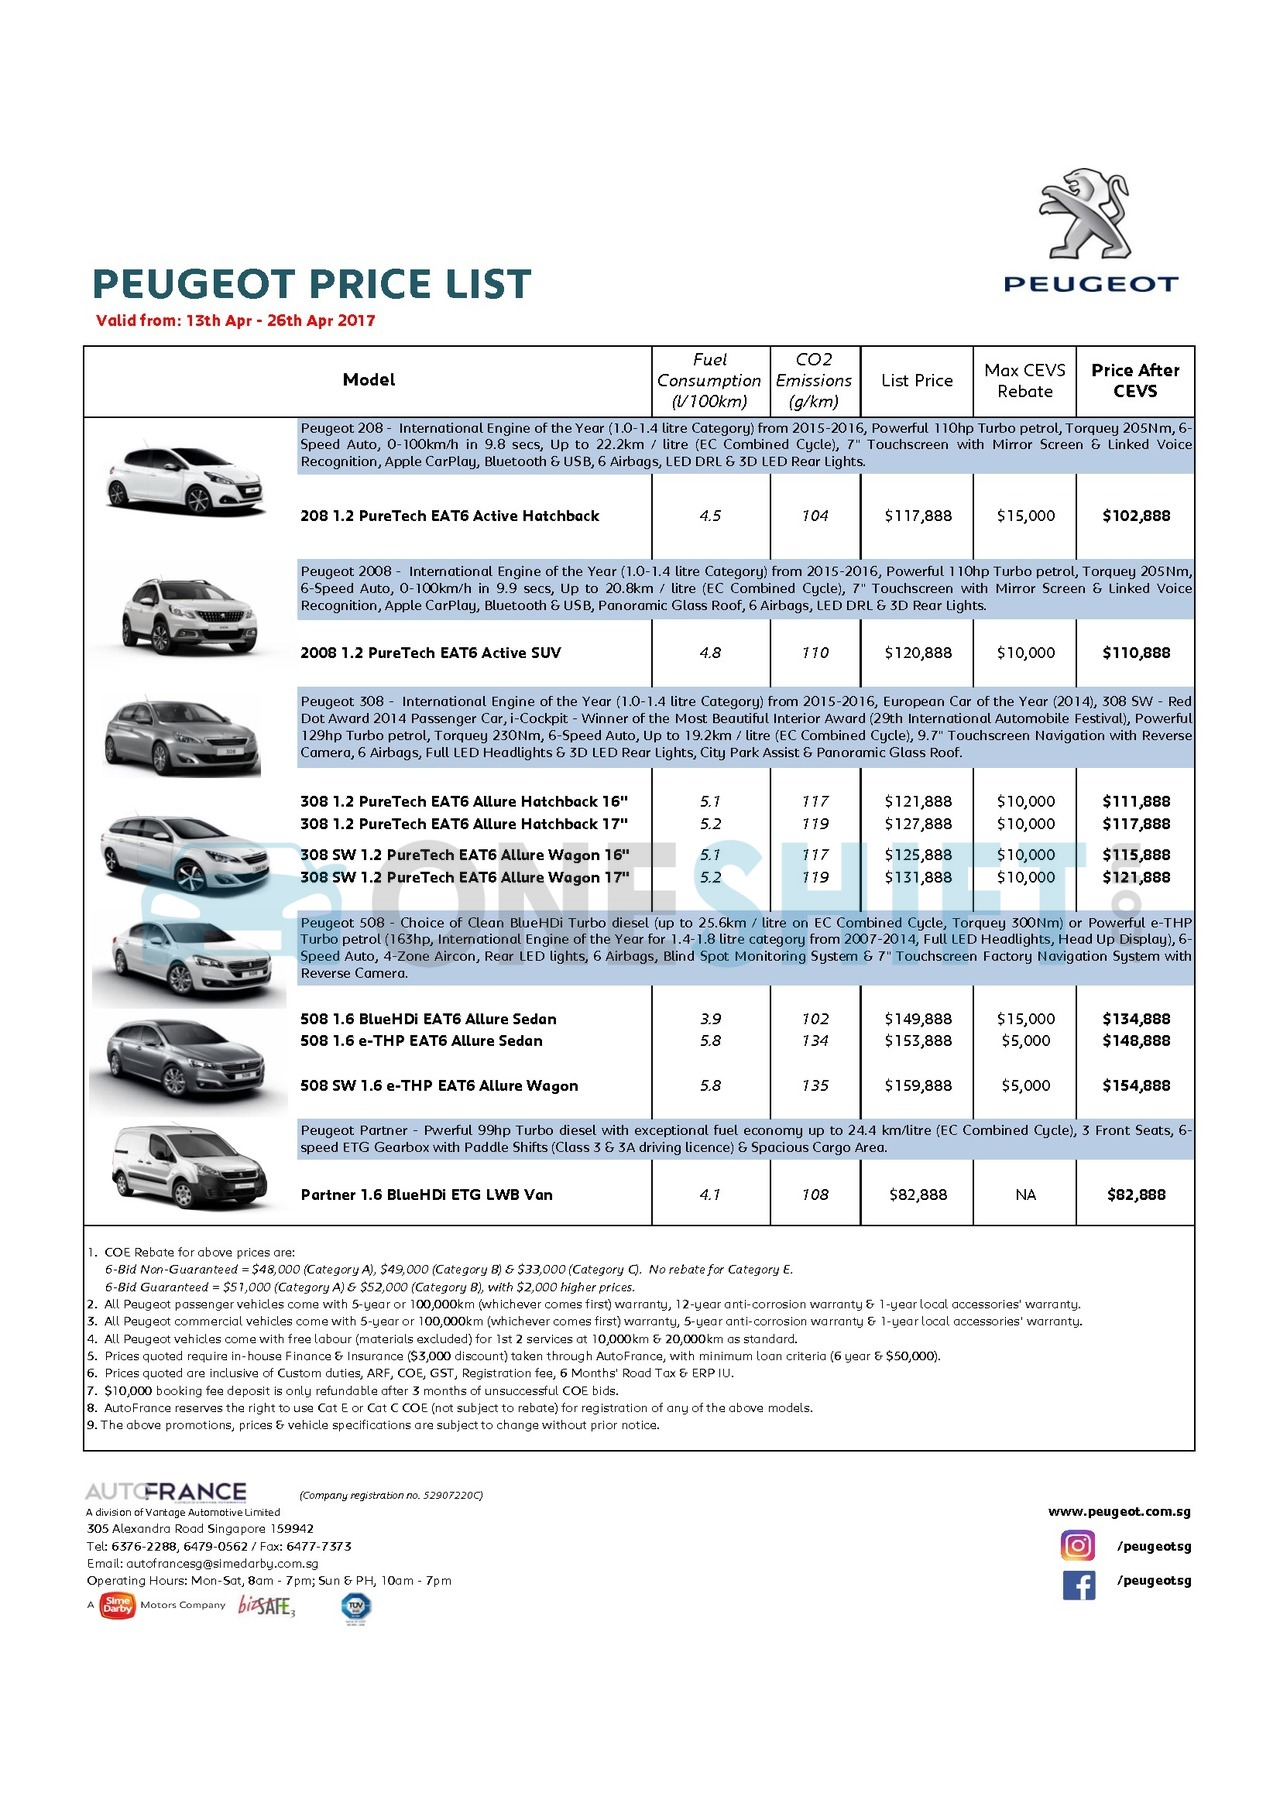 peugeot Price List 4-13-2017 Page 1